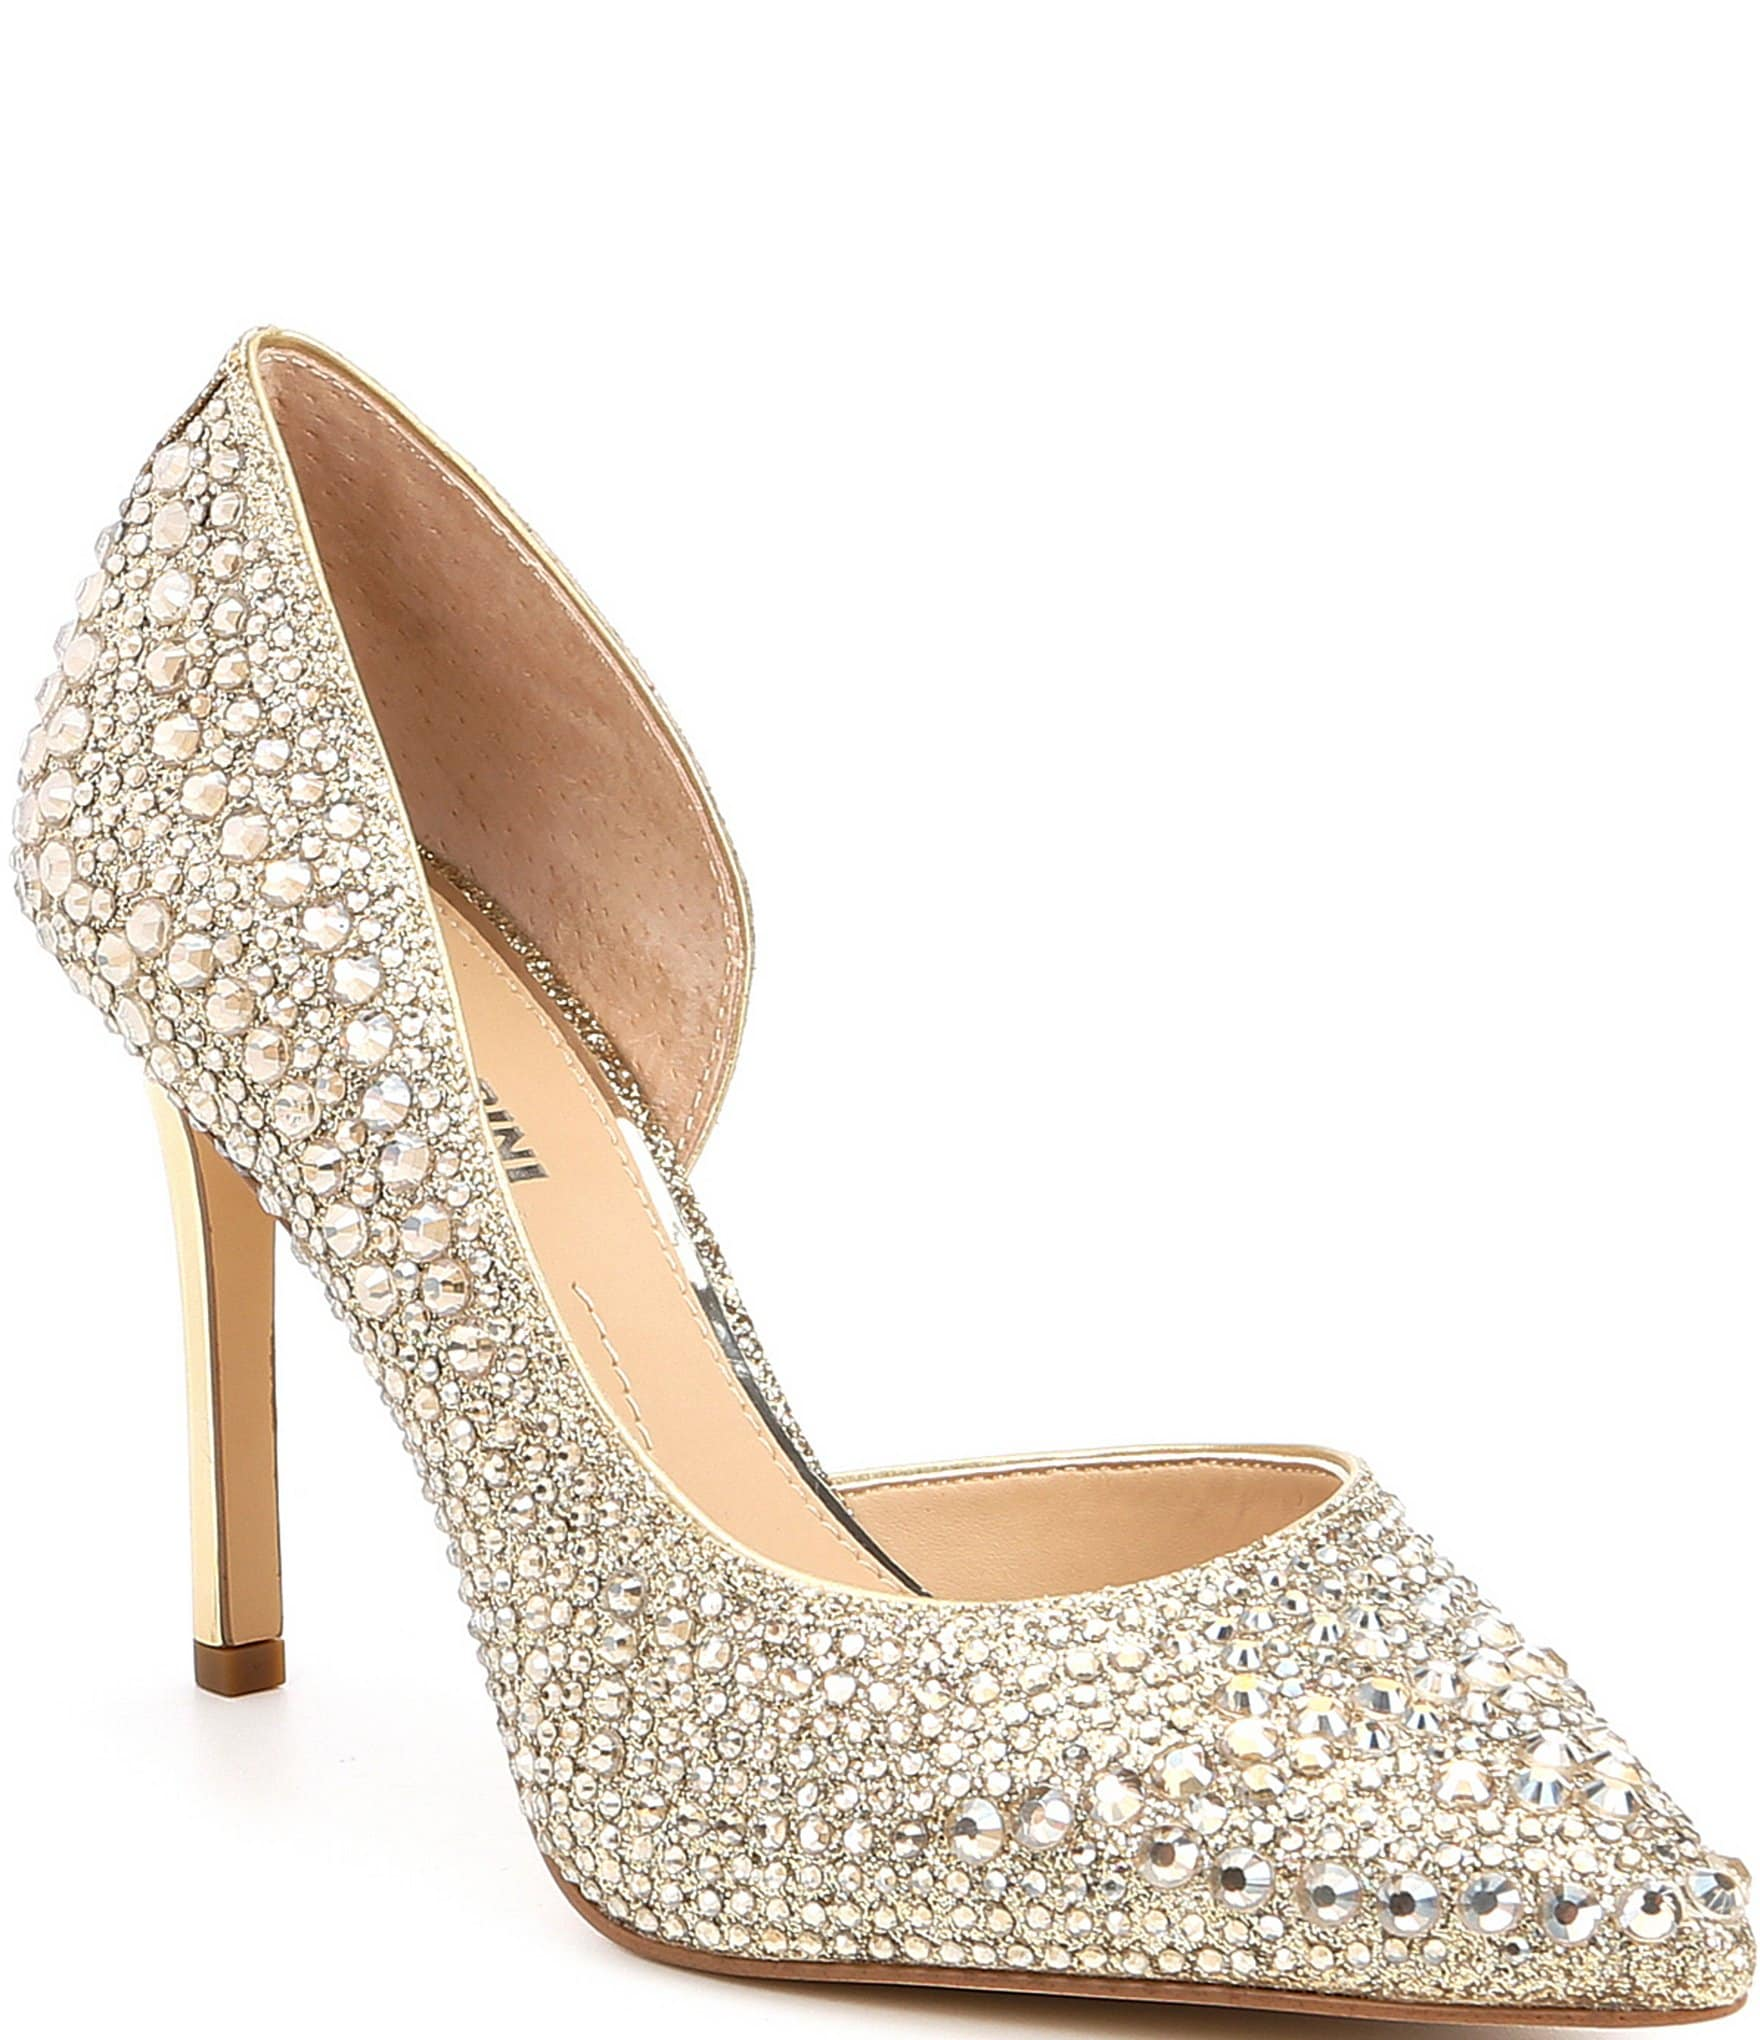 c48f393718b2 Gold Women s Pumps